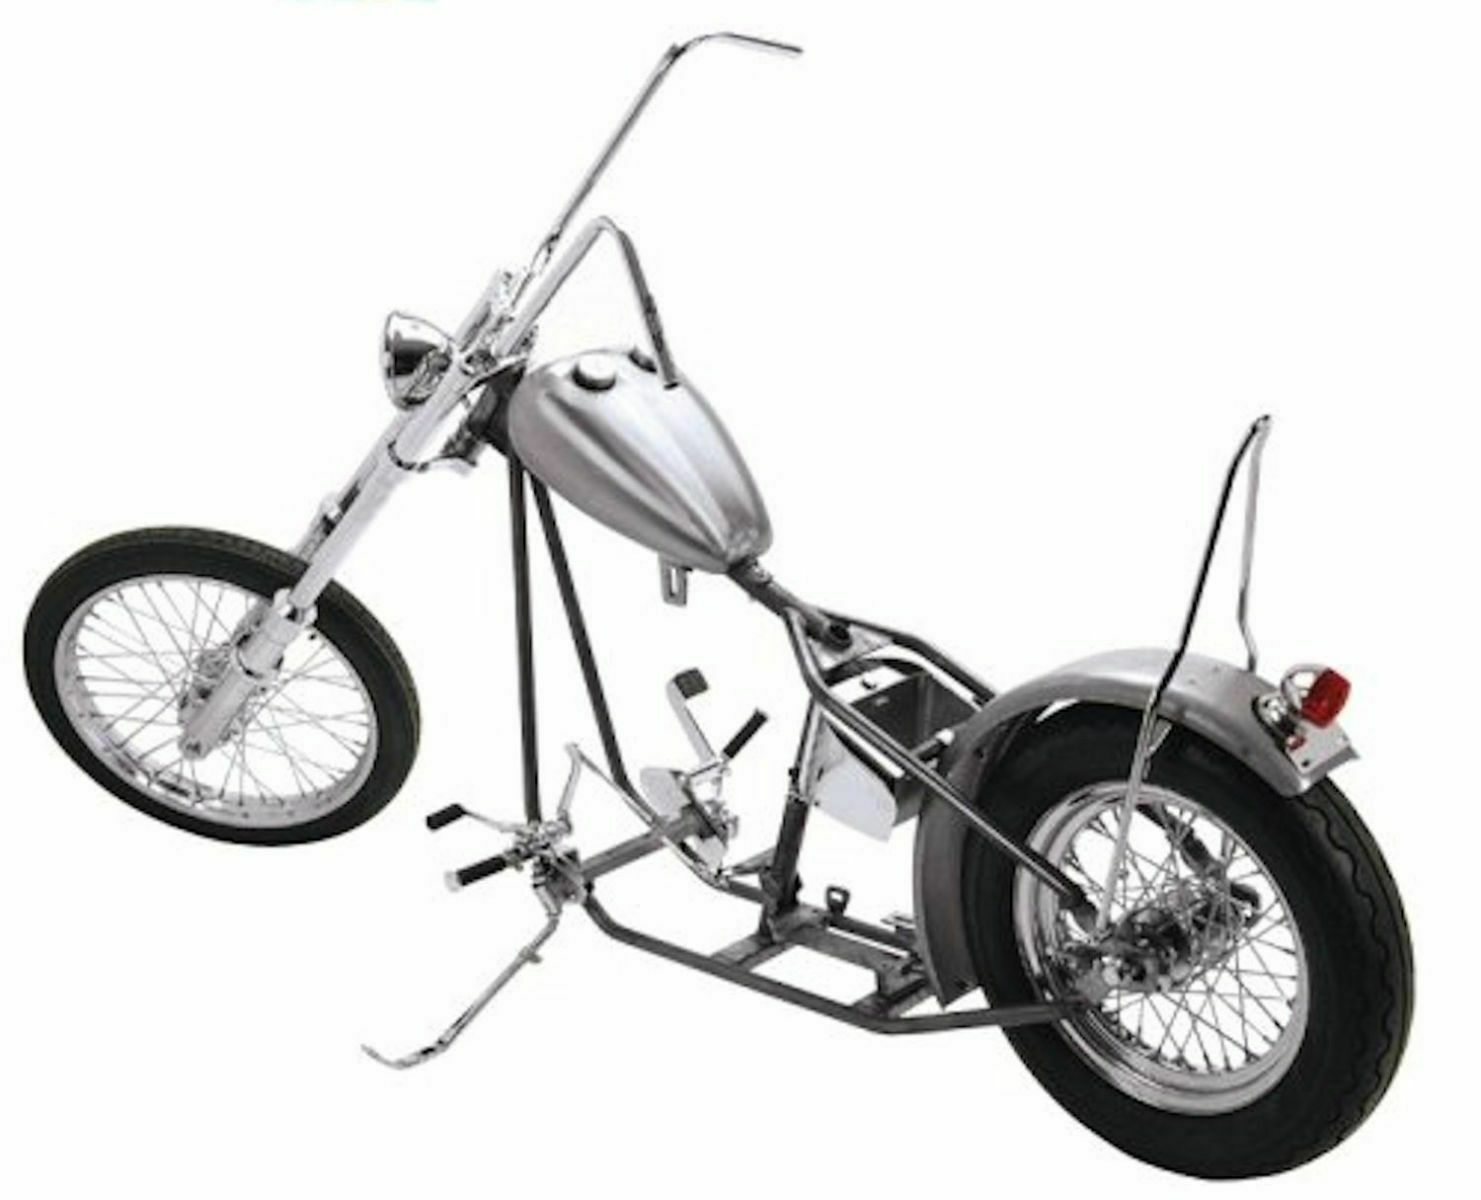 Easyrider 4 Up Rigid Frame Rolling Chassis Bike Kit Harley Custom Chopper  Bobber • $2,999.00